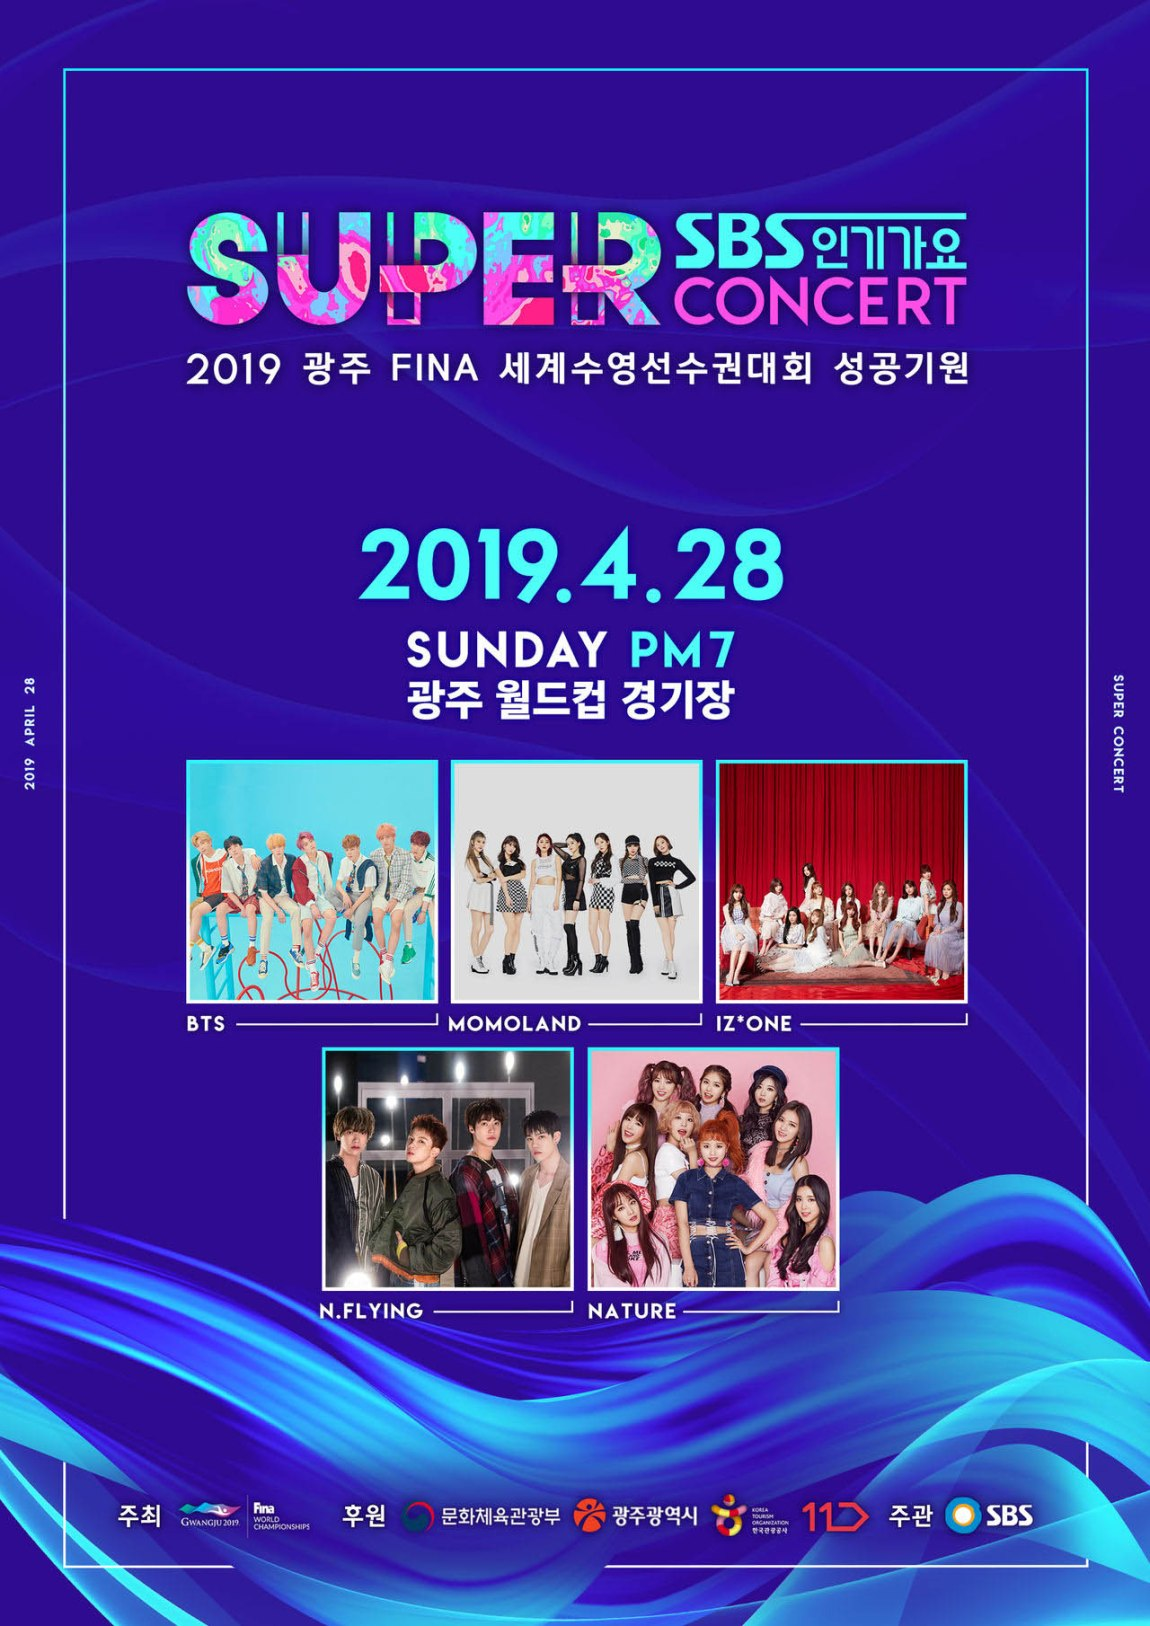 The first lineup of SBS Inkigayo Super Concert 2019